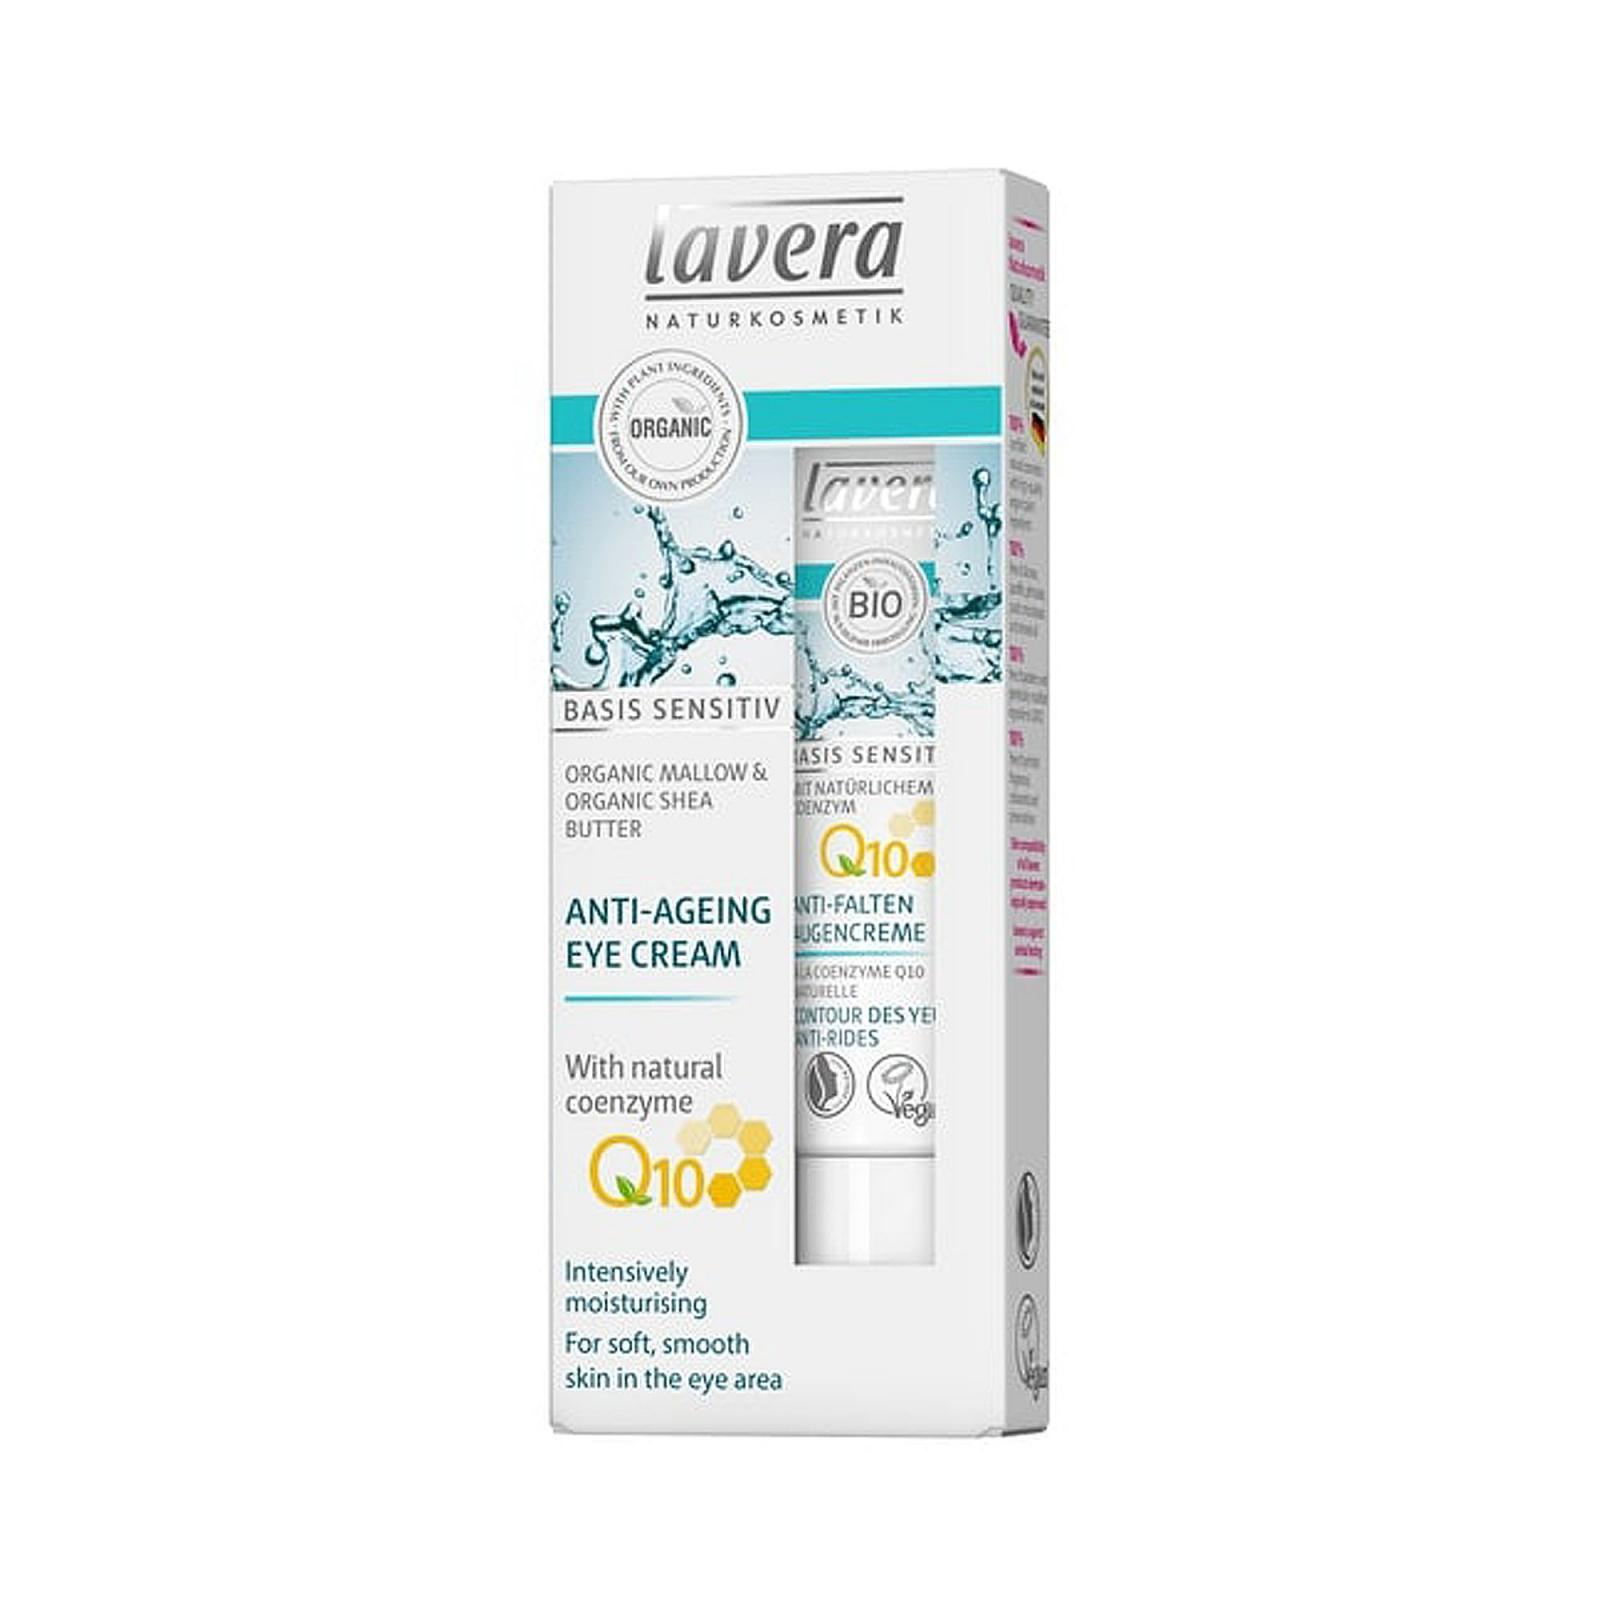 Lavera Oční krém Q10, Basis Sensitive 15 ml